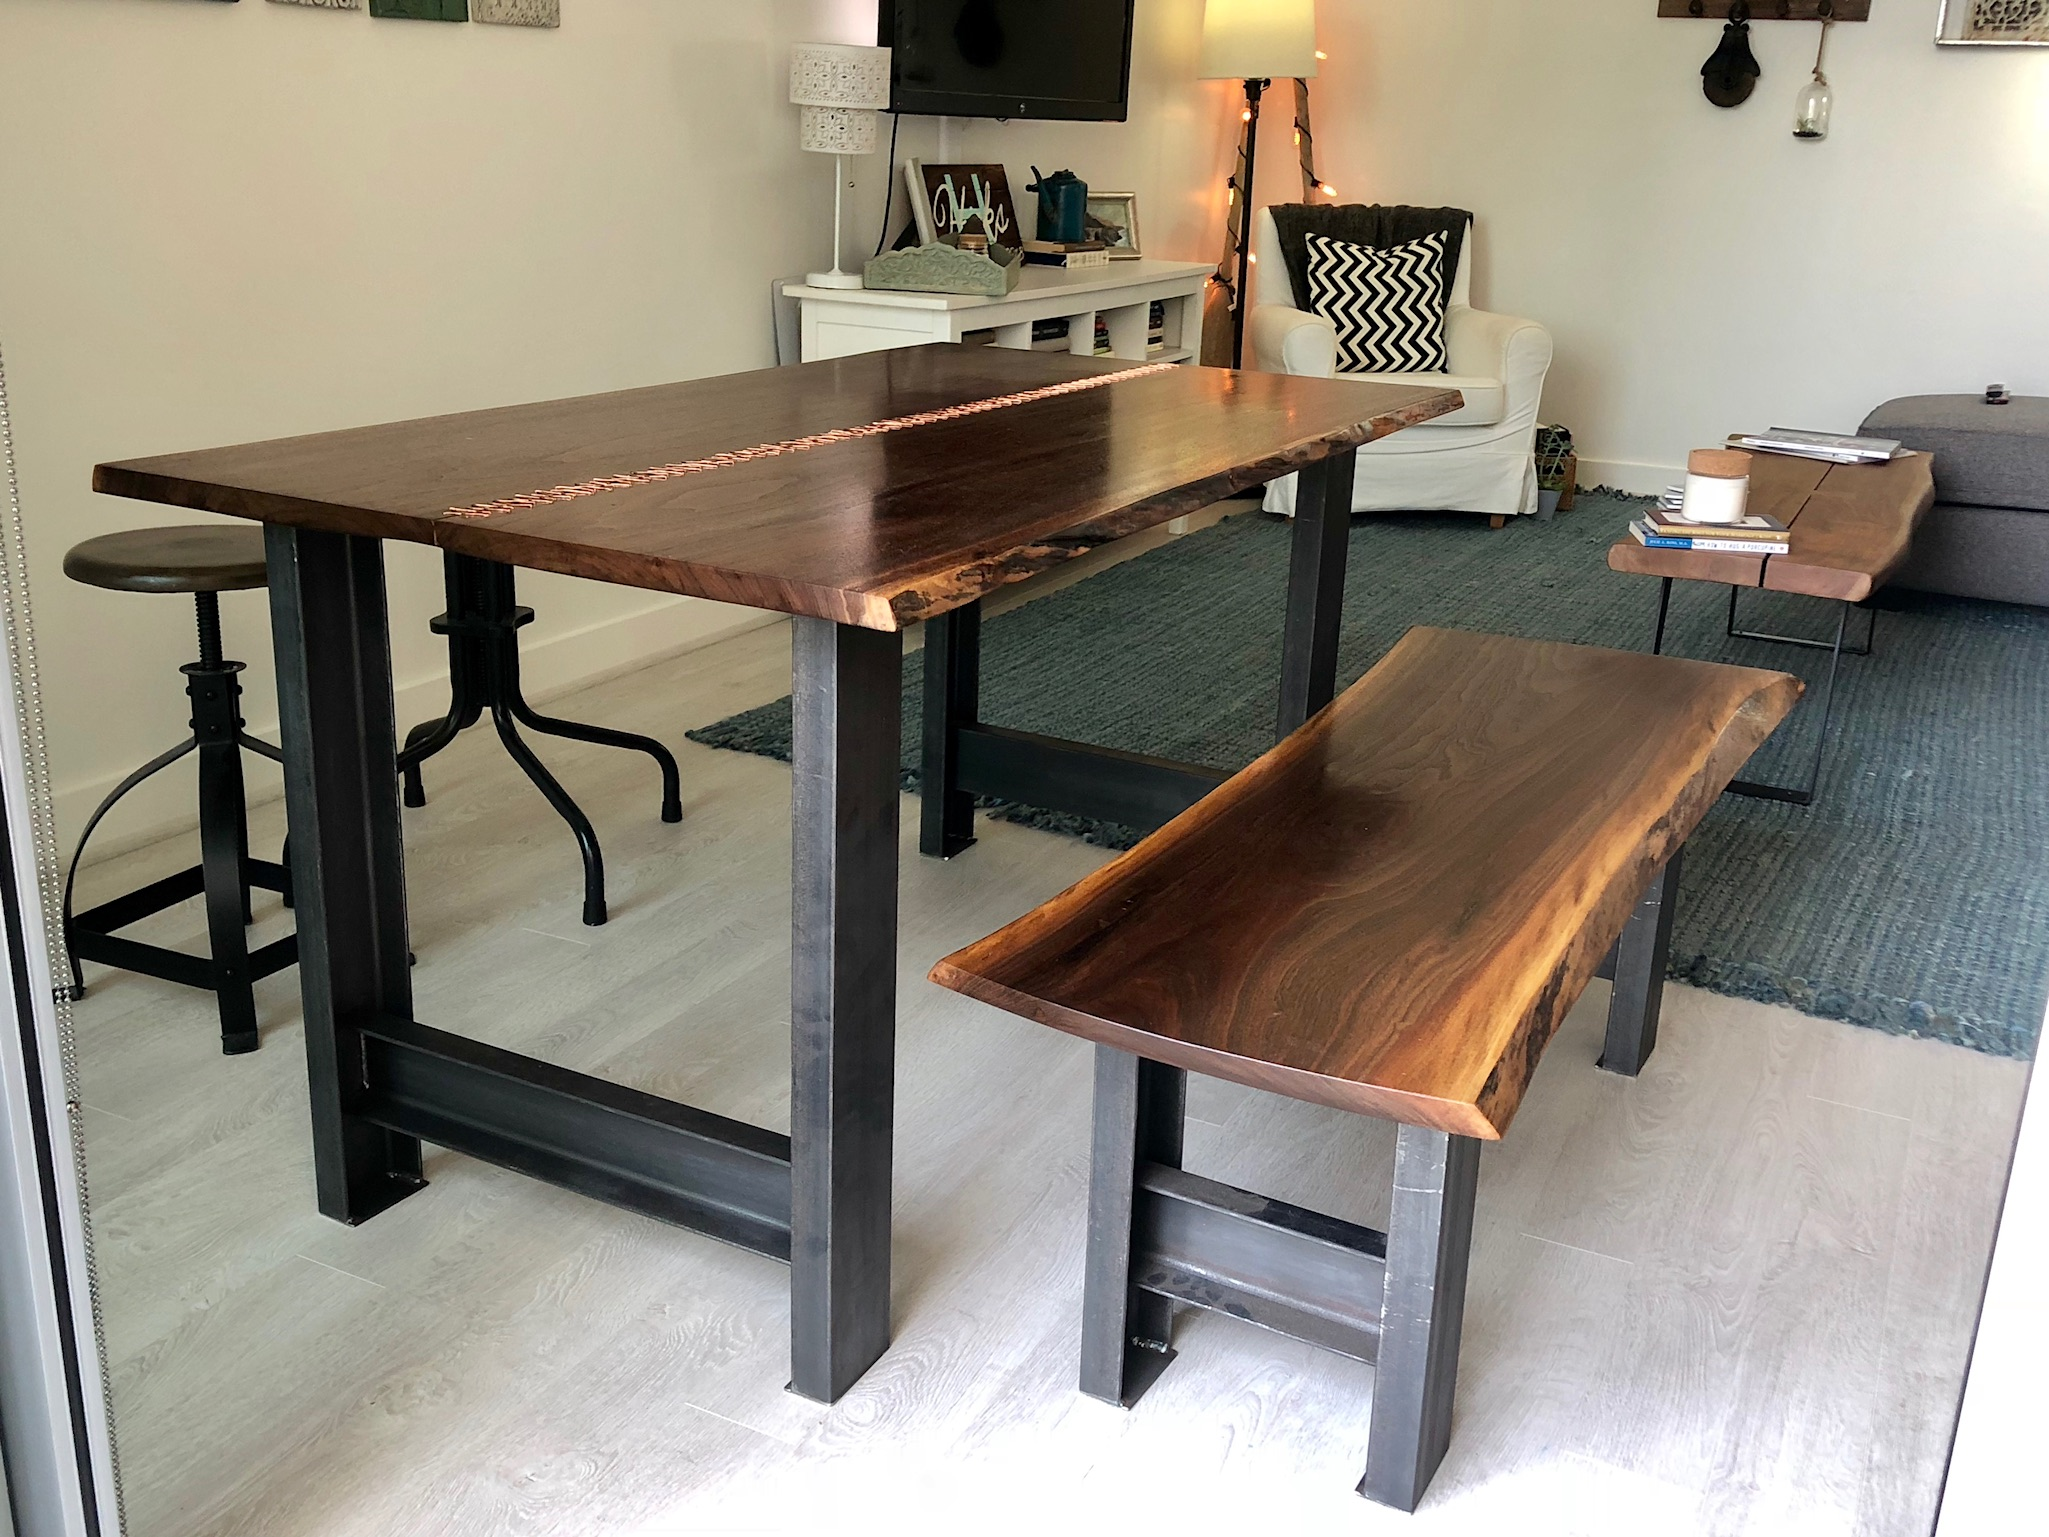 Copper Laced Table and Bench